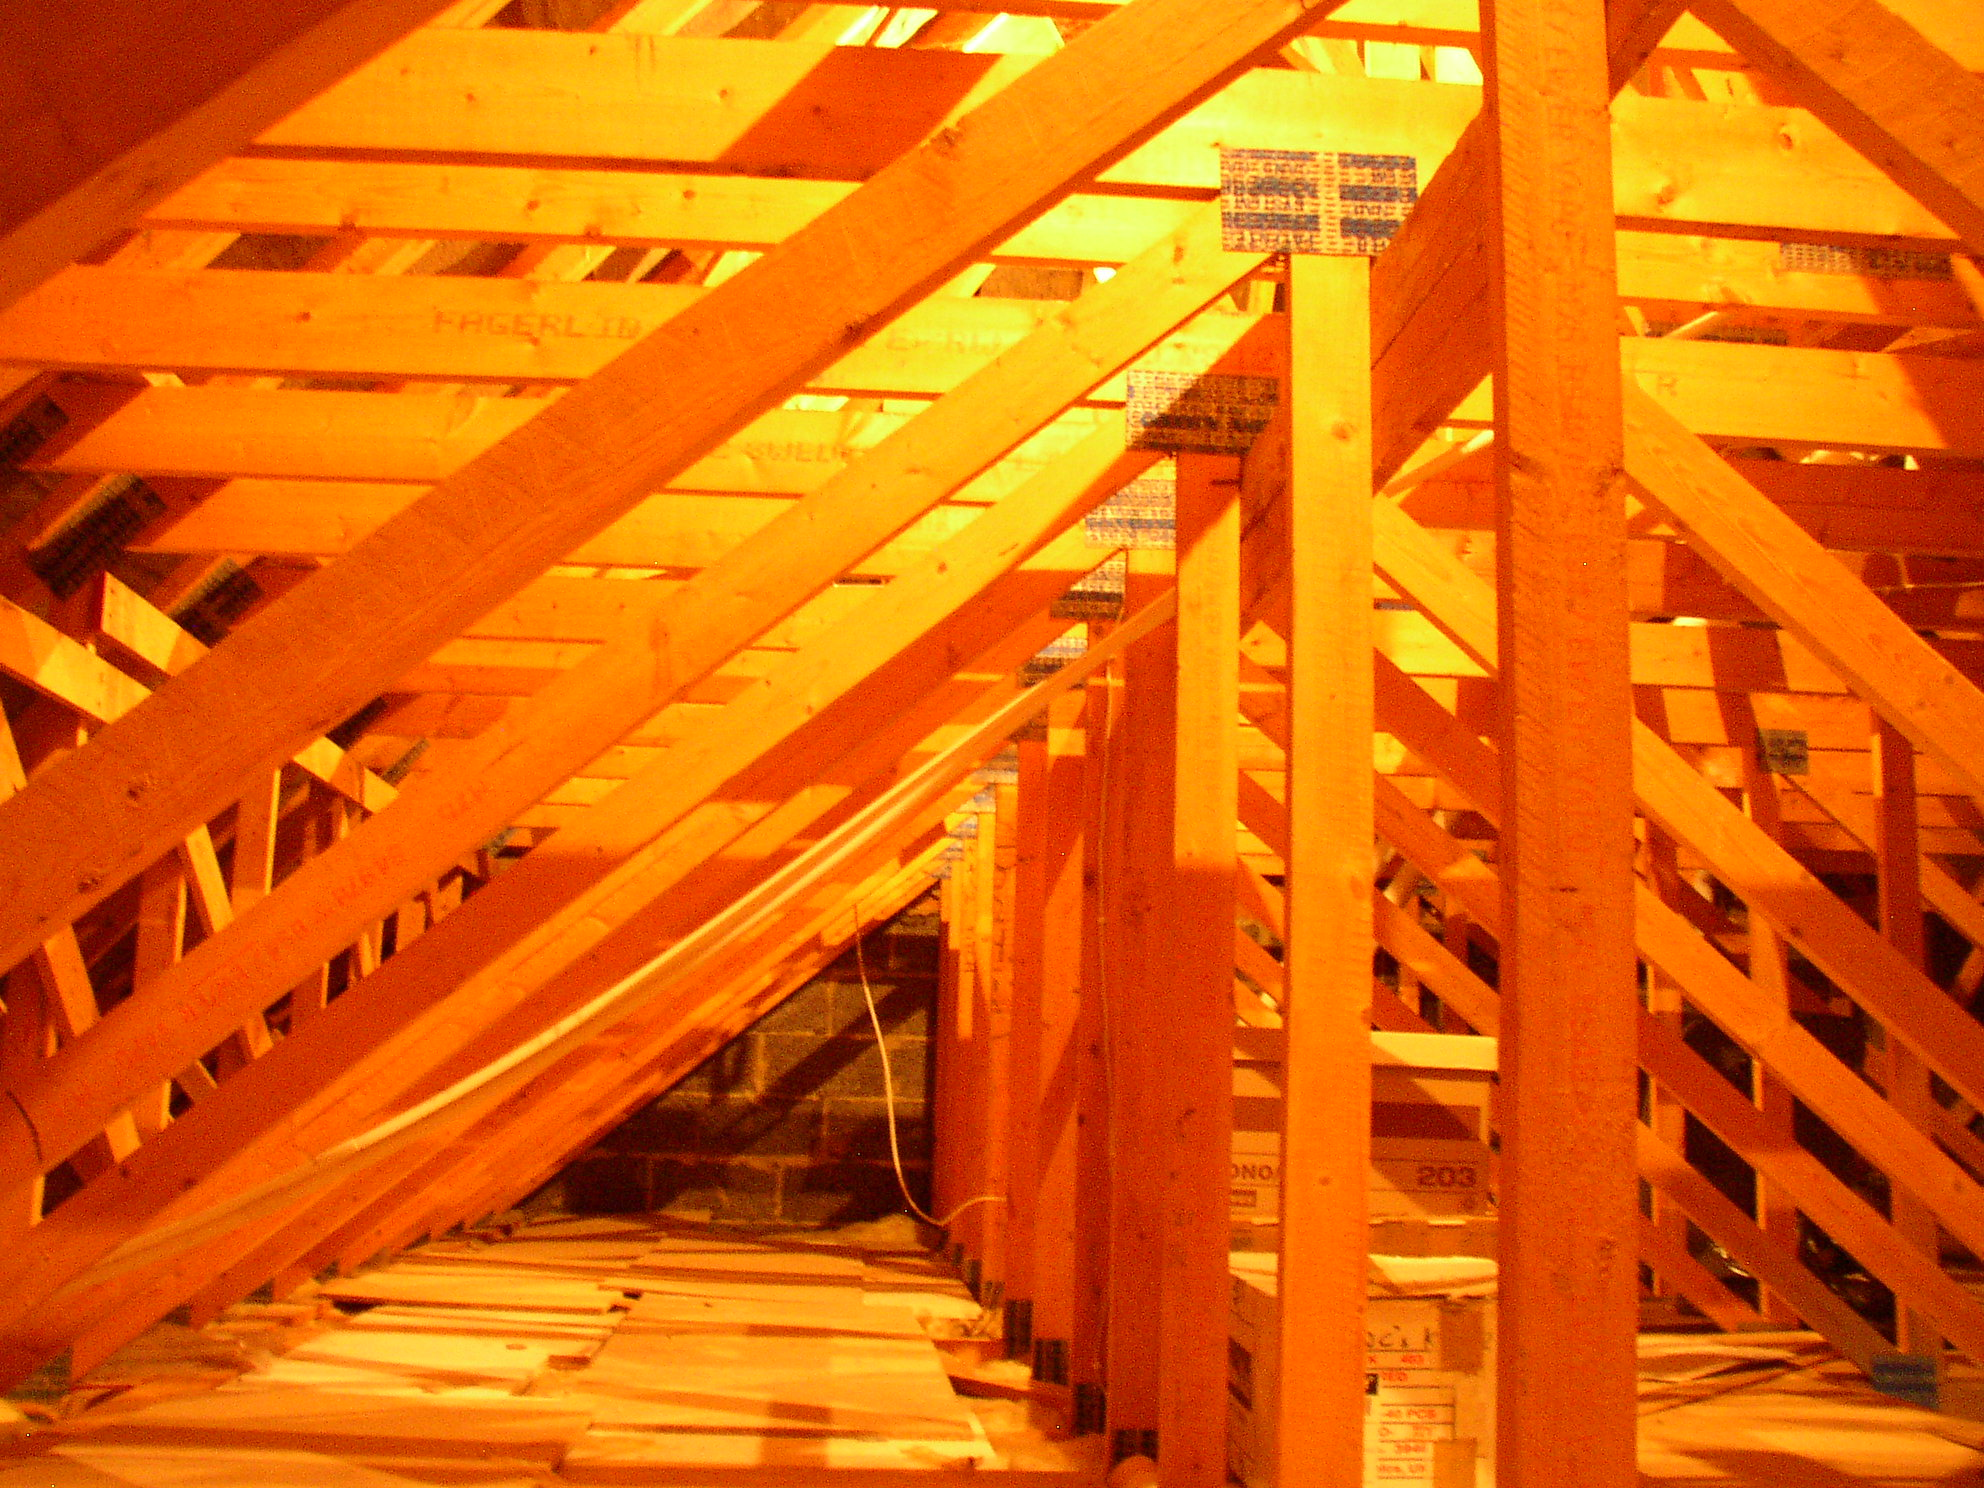 Roof with truss rafters